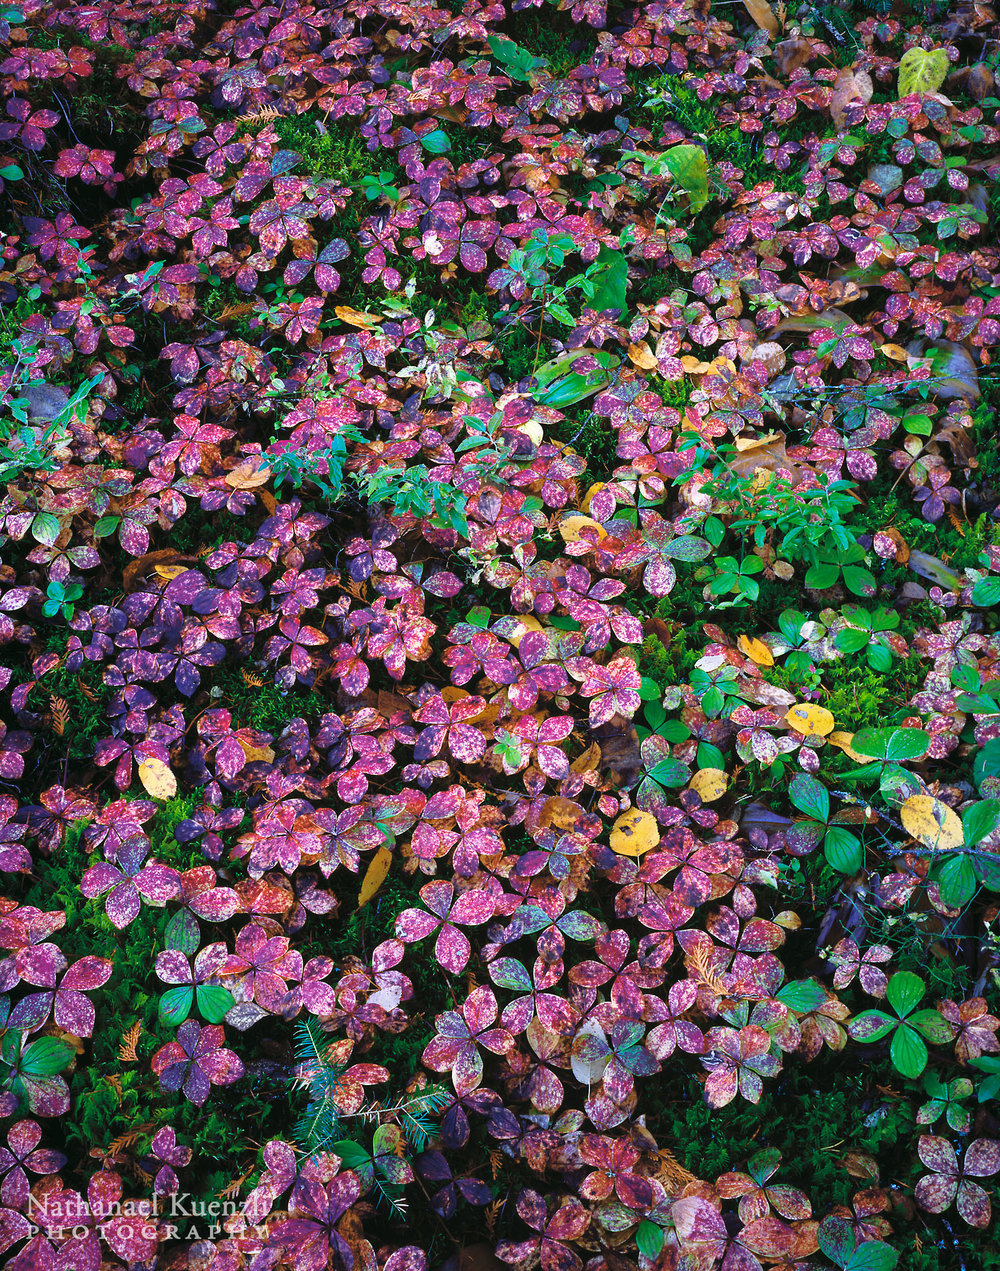 Bunchberry, Boundary Waters Canoe Area Wilderness, Minnesota, October 2005